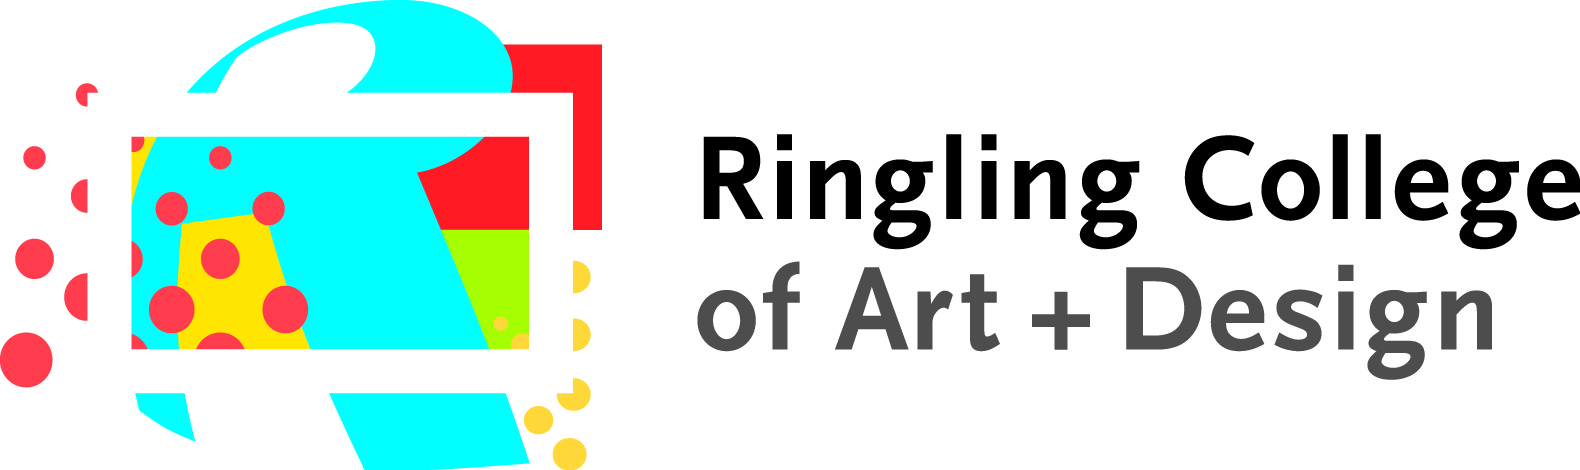 Summer Camp Highlight Ringling College Of Art Design